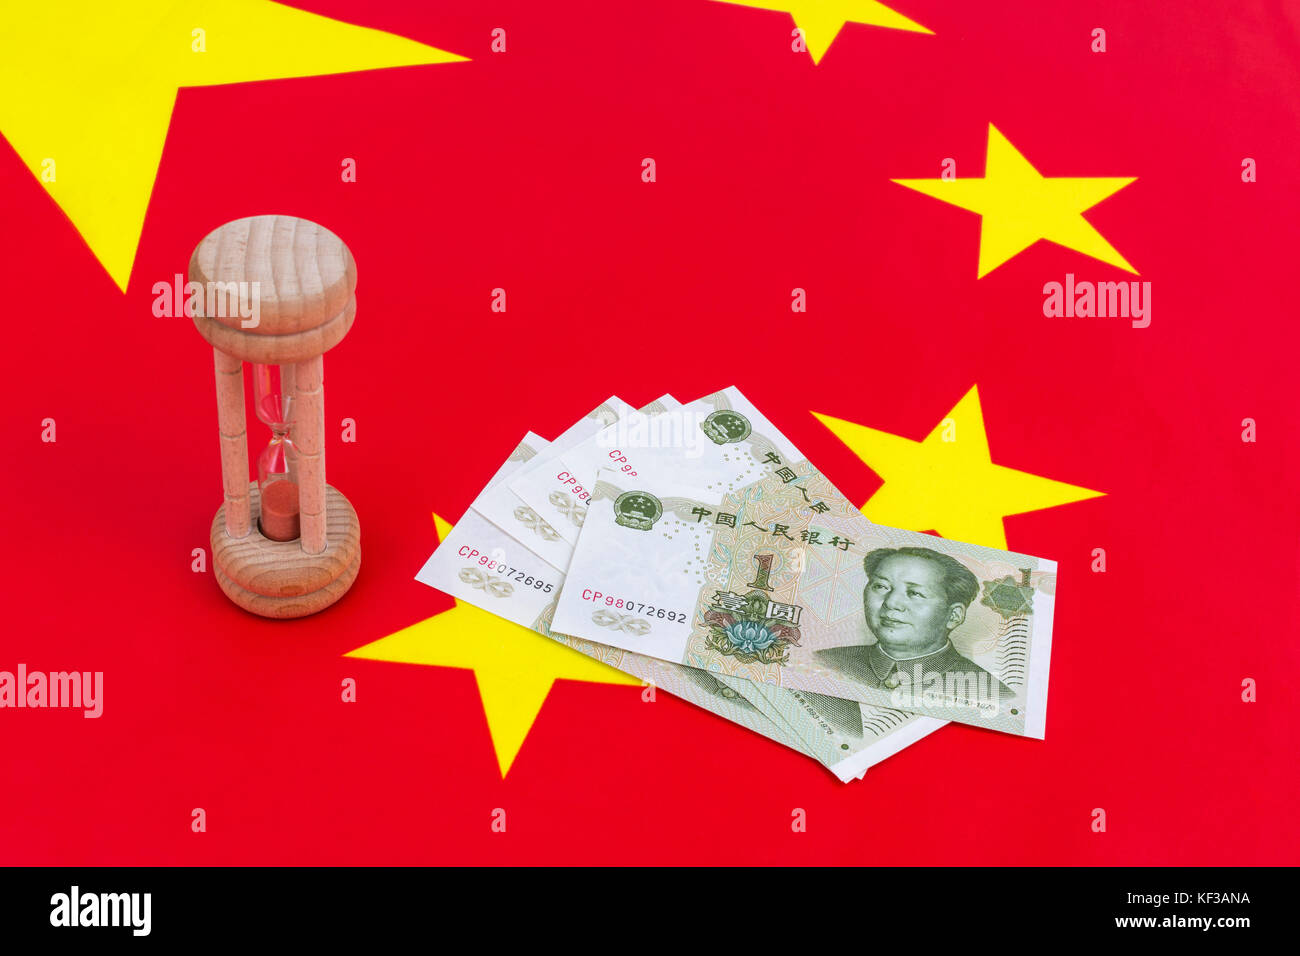 Chinese flag + small egg timer & Yuan banknotes. Metaphor Chinese growing debt problem / crisis, China time running Stock Photo